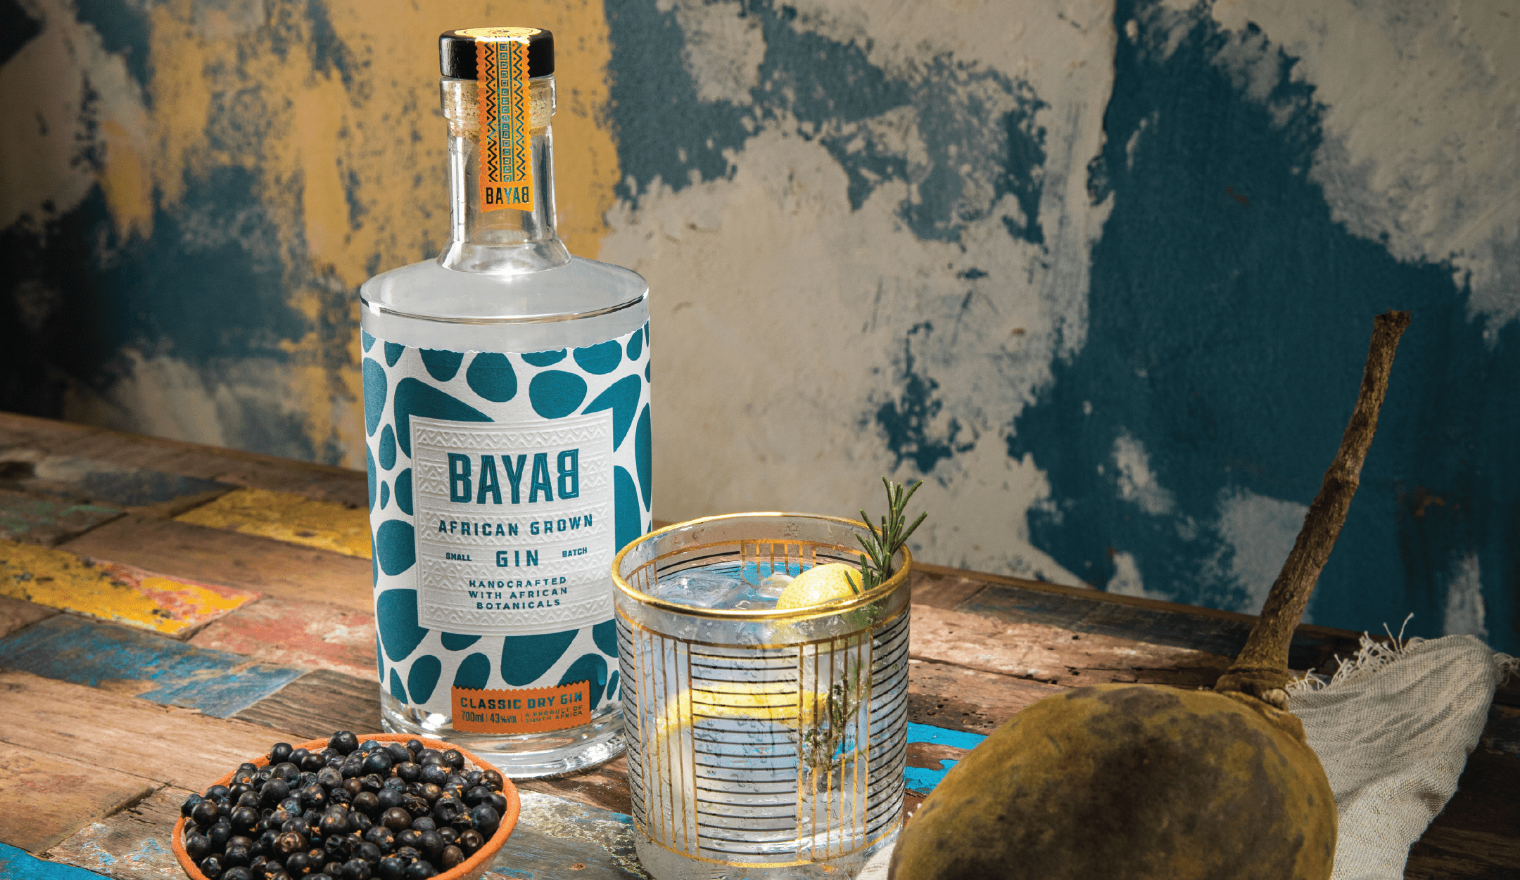 Backbar Studio's unique rebrand for African grown Bayab Gin